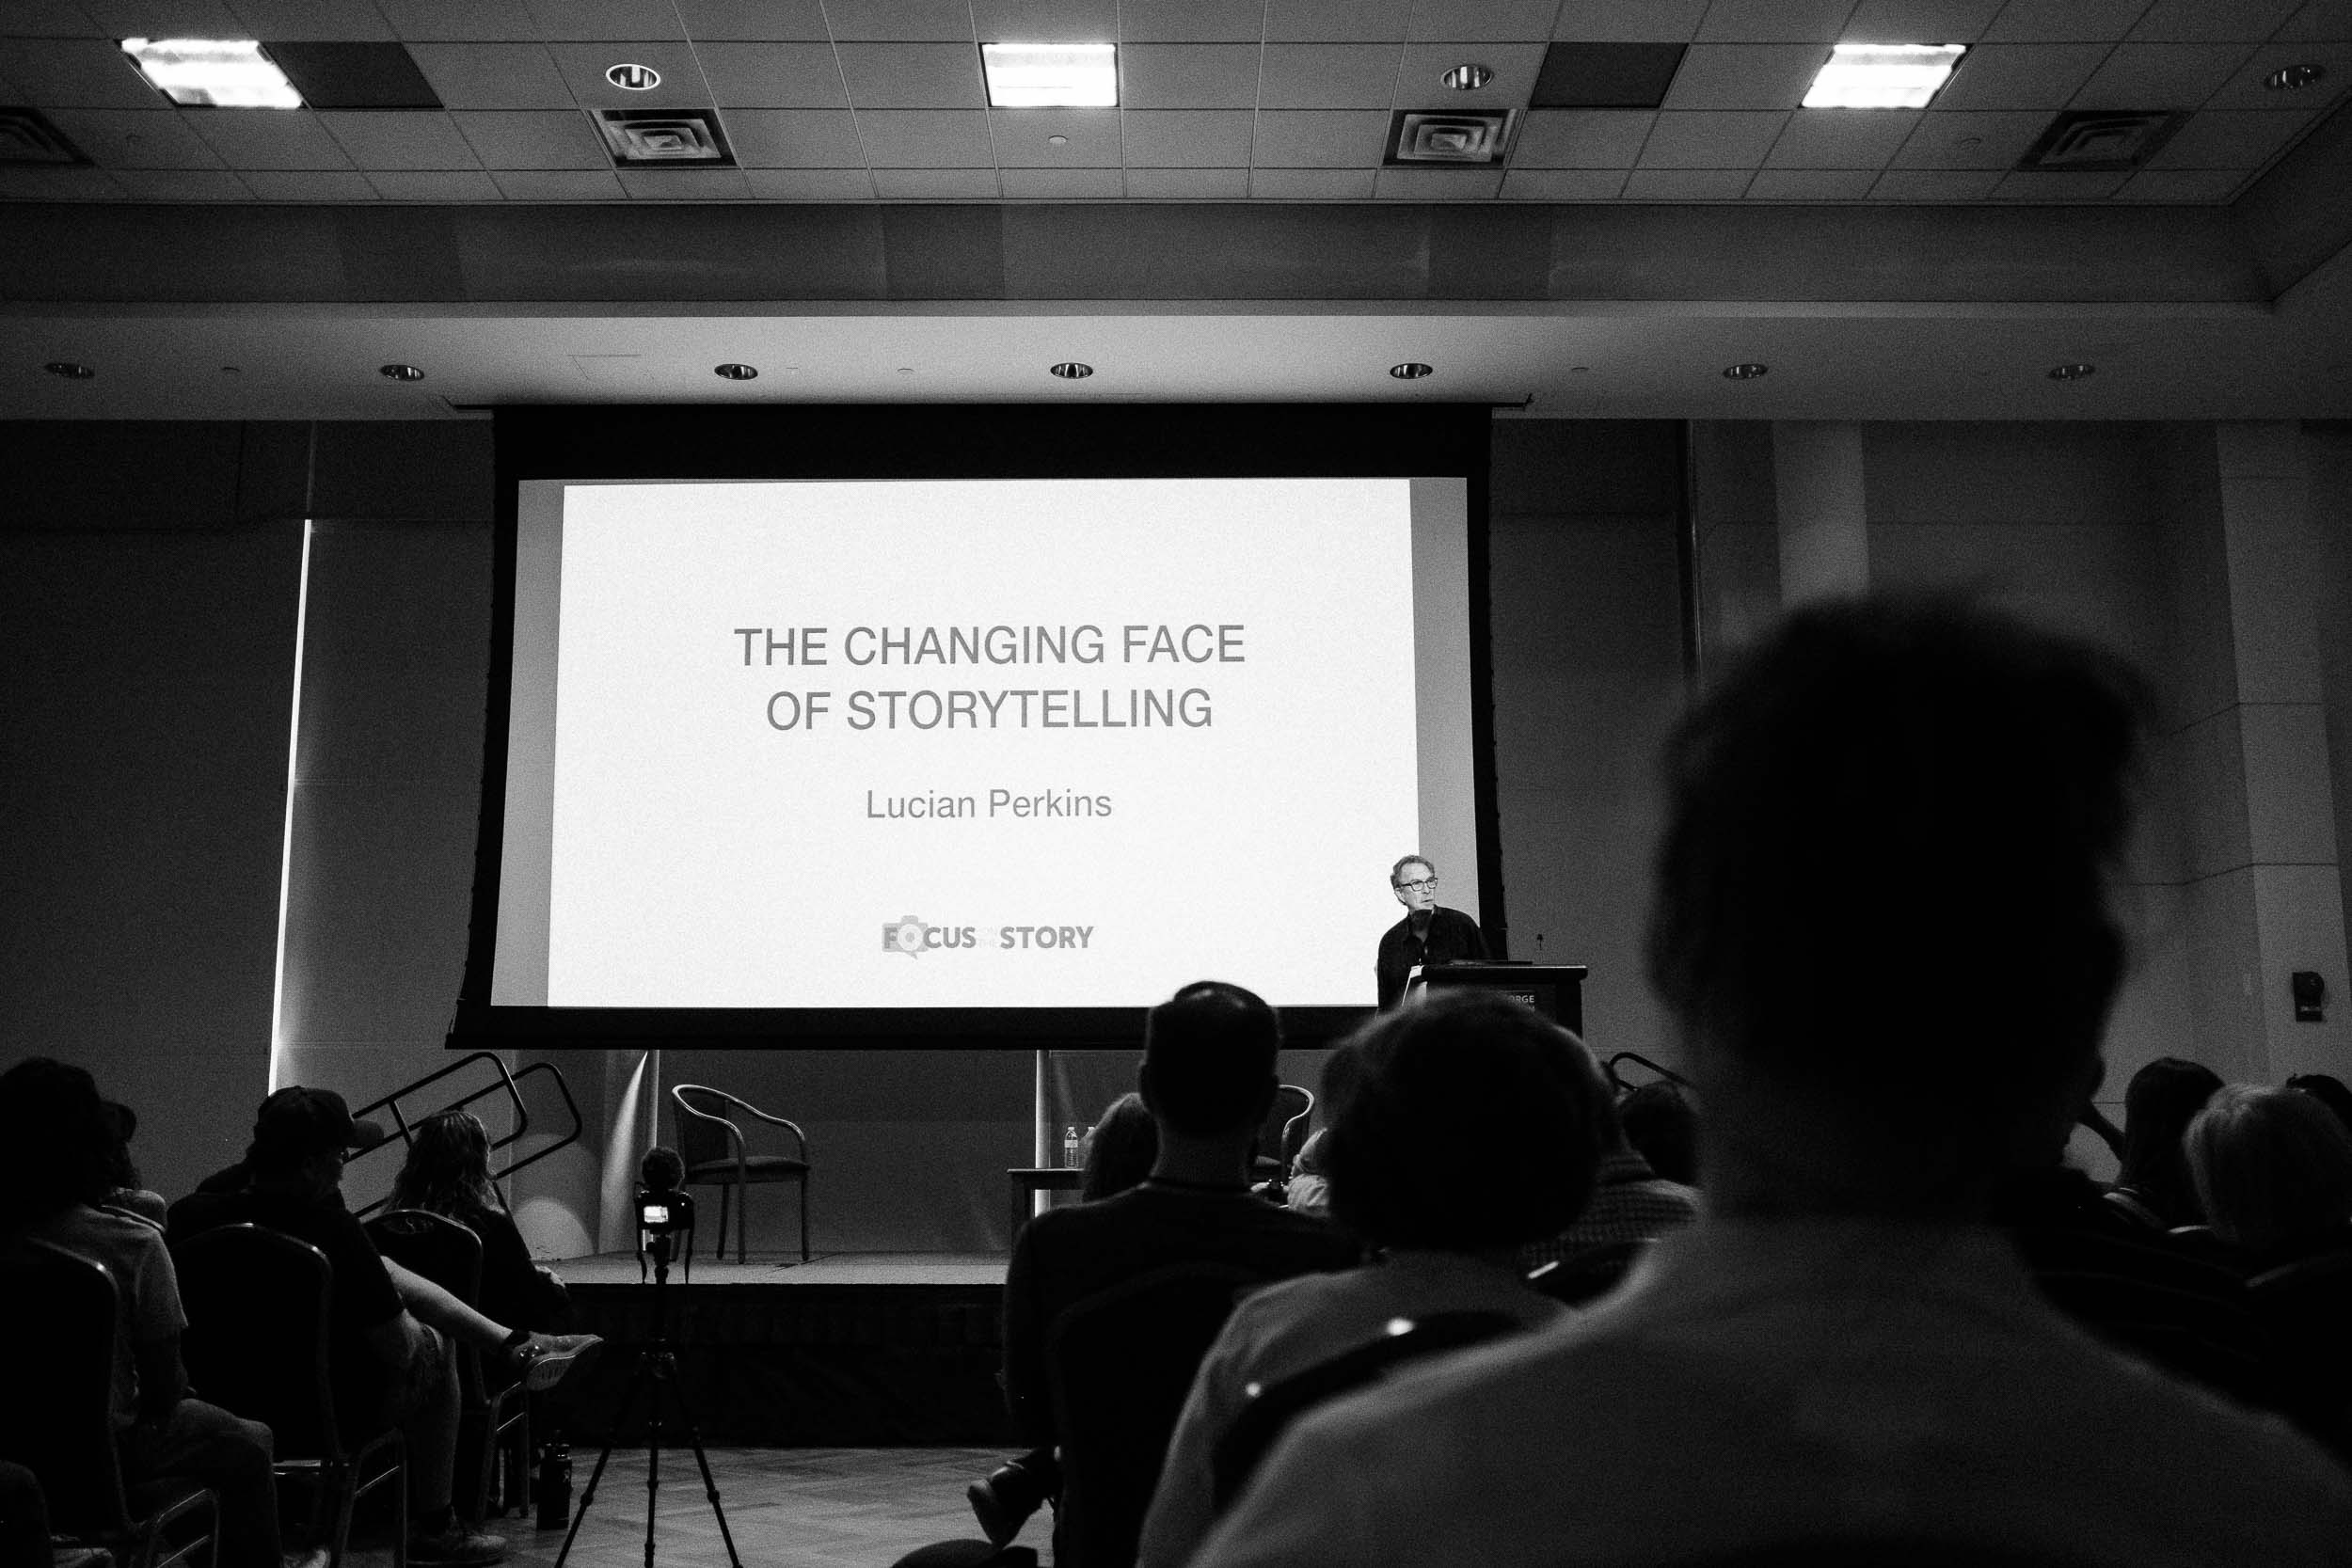 Lucian Perkins formerly of the Washington Post discussing his favorite photo series over the years and how technology is changing visual story